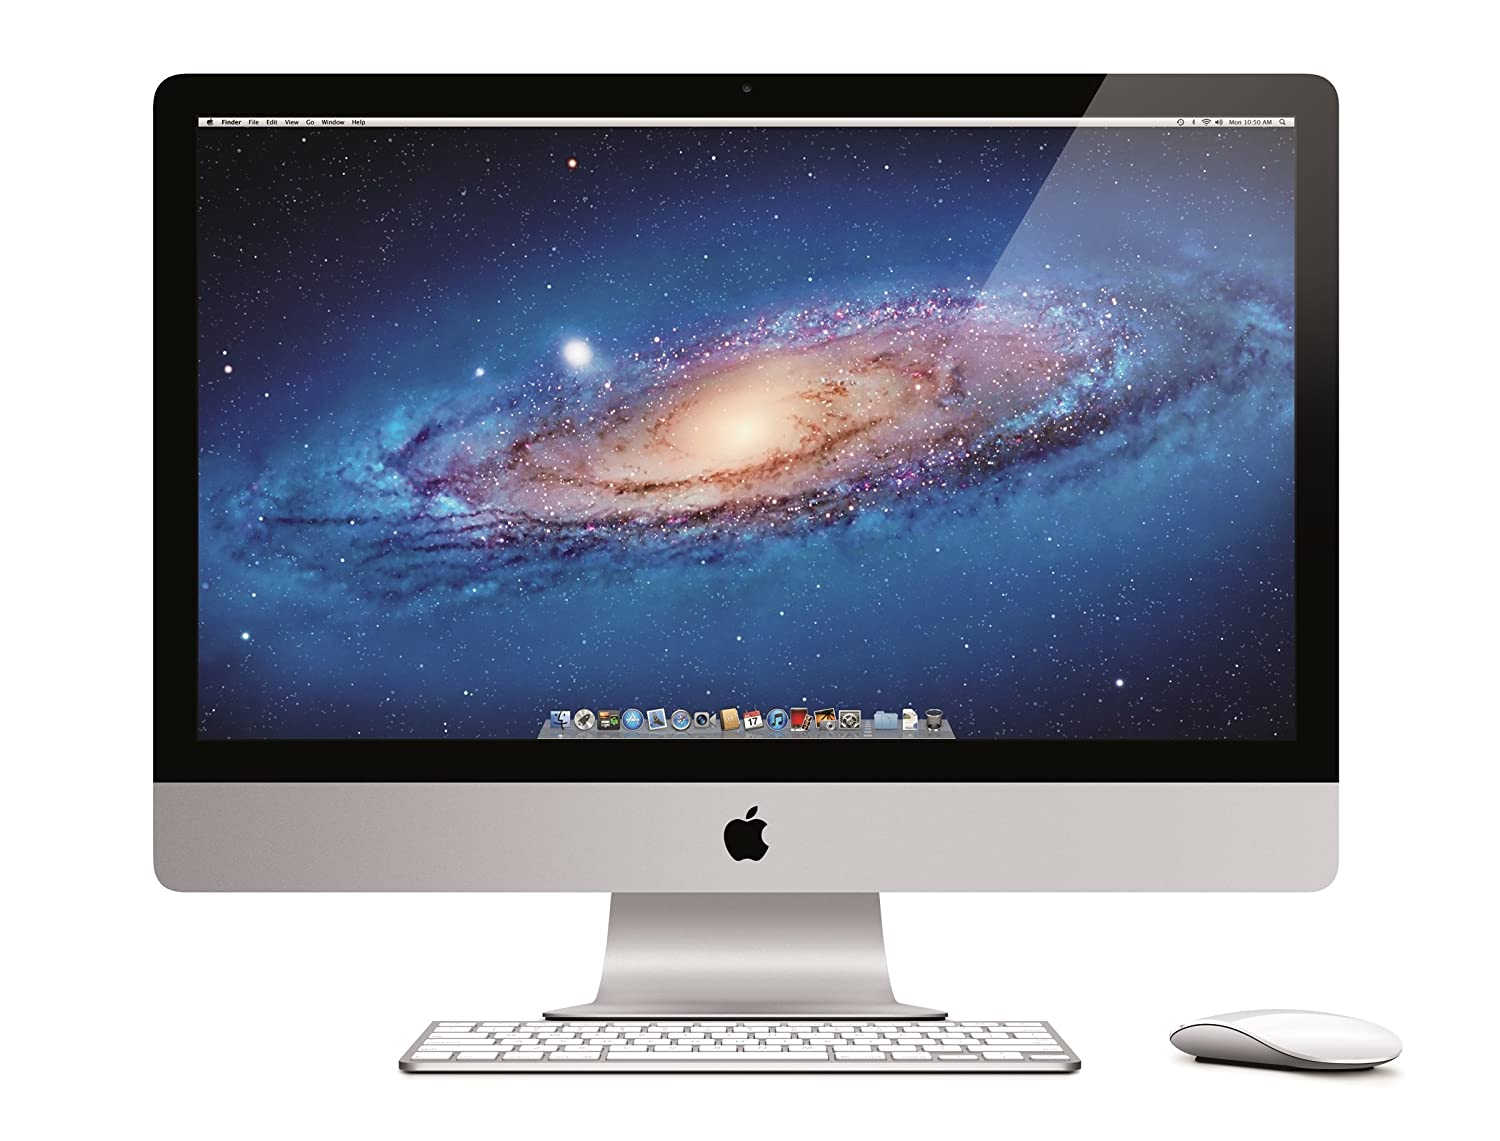 Apple Imac Ordinateur De Bureau  Intel Core I To  Mo Carte Graphique Radeon Hd M Amazon Fr Informatique